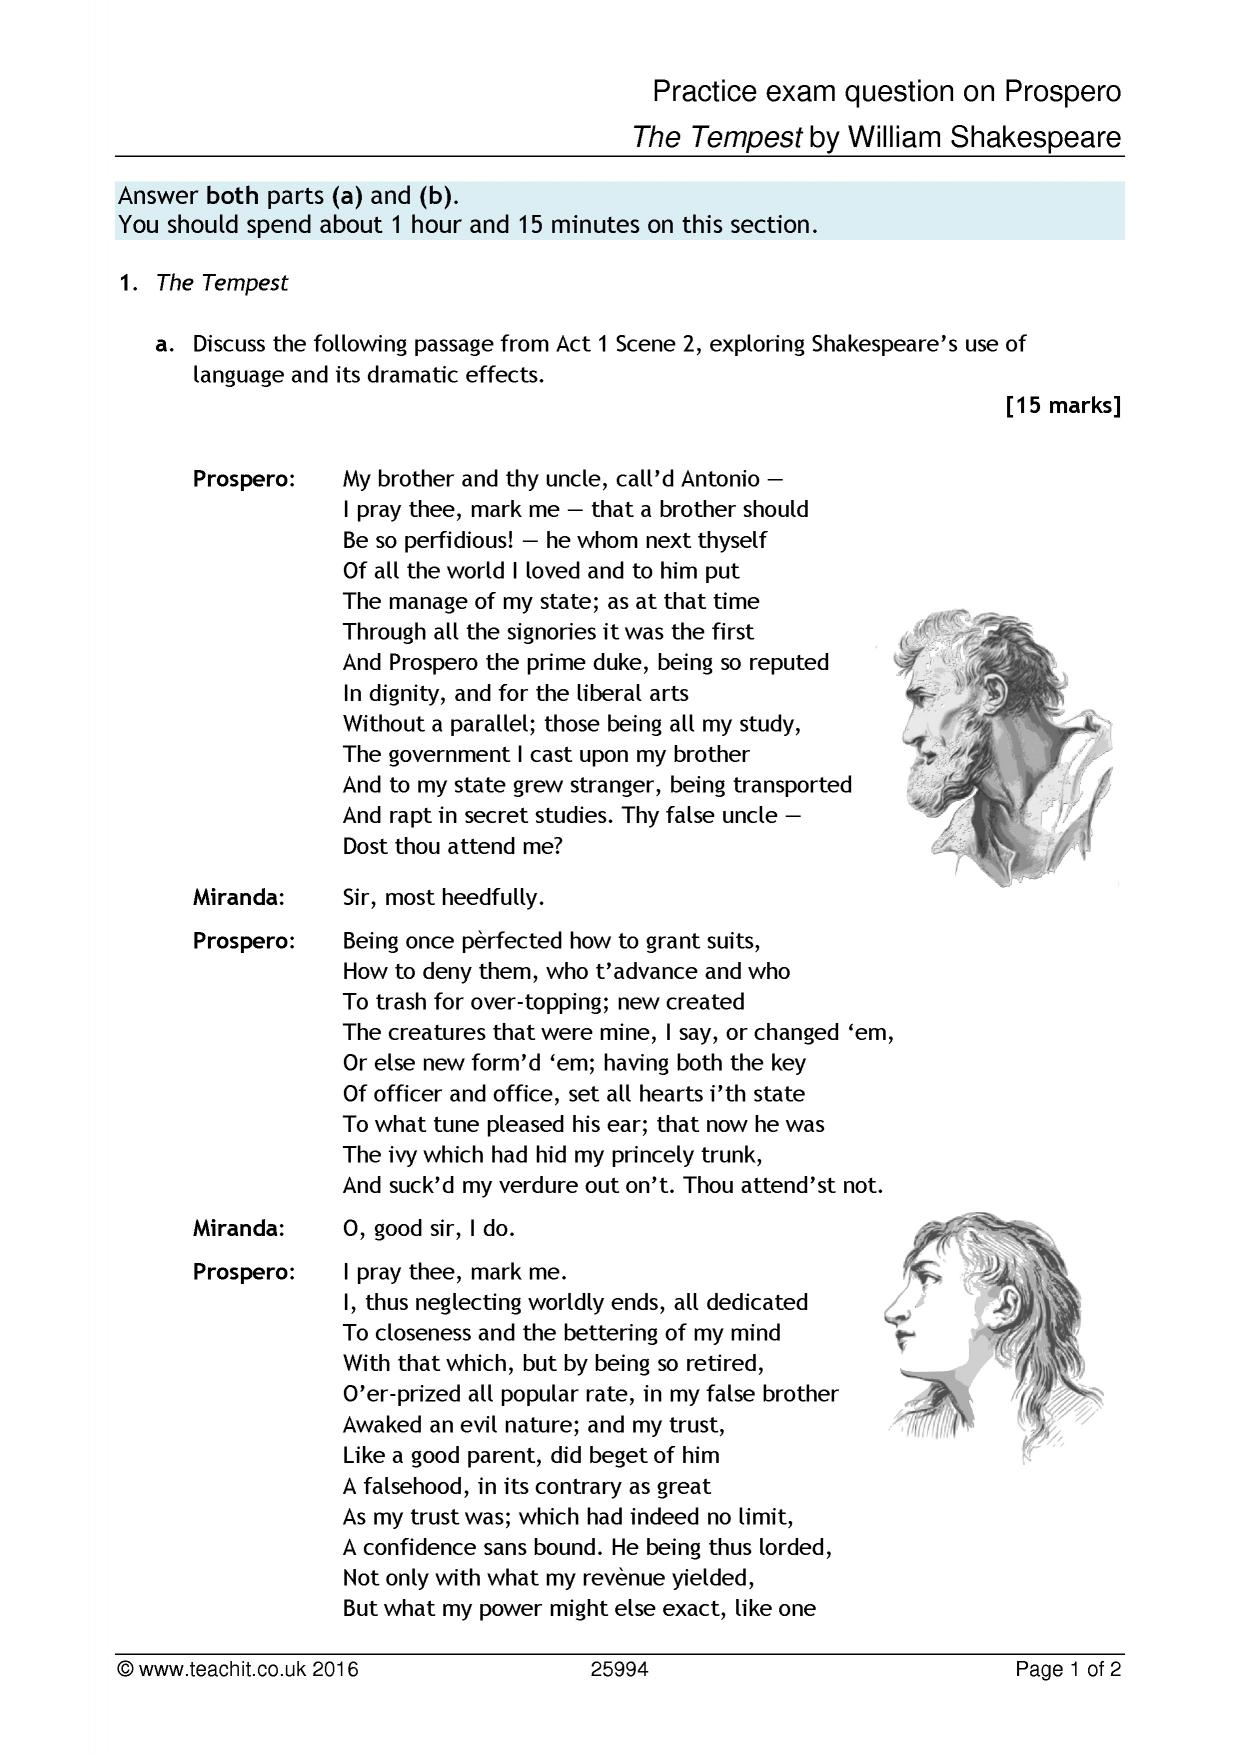 igcse essay questions on the tempest The tempest questions and answers - discover the enotescom community of teachers, mentors and students just like you that can answer any question you might.